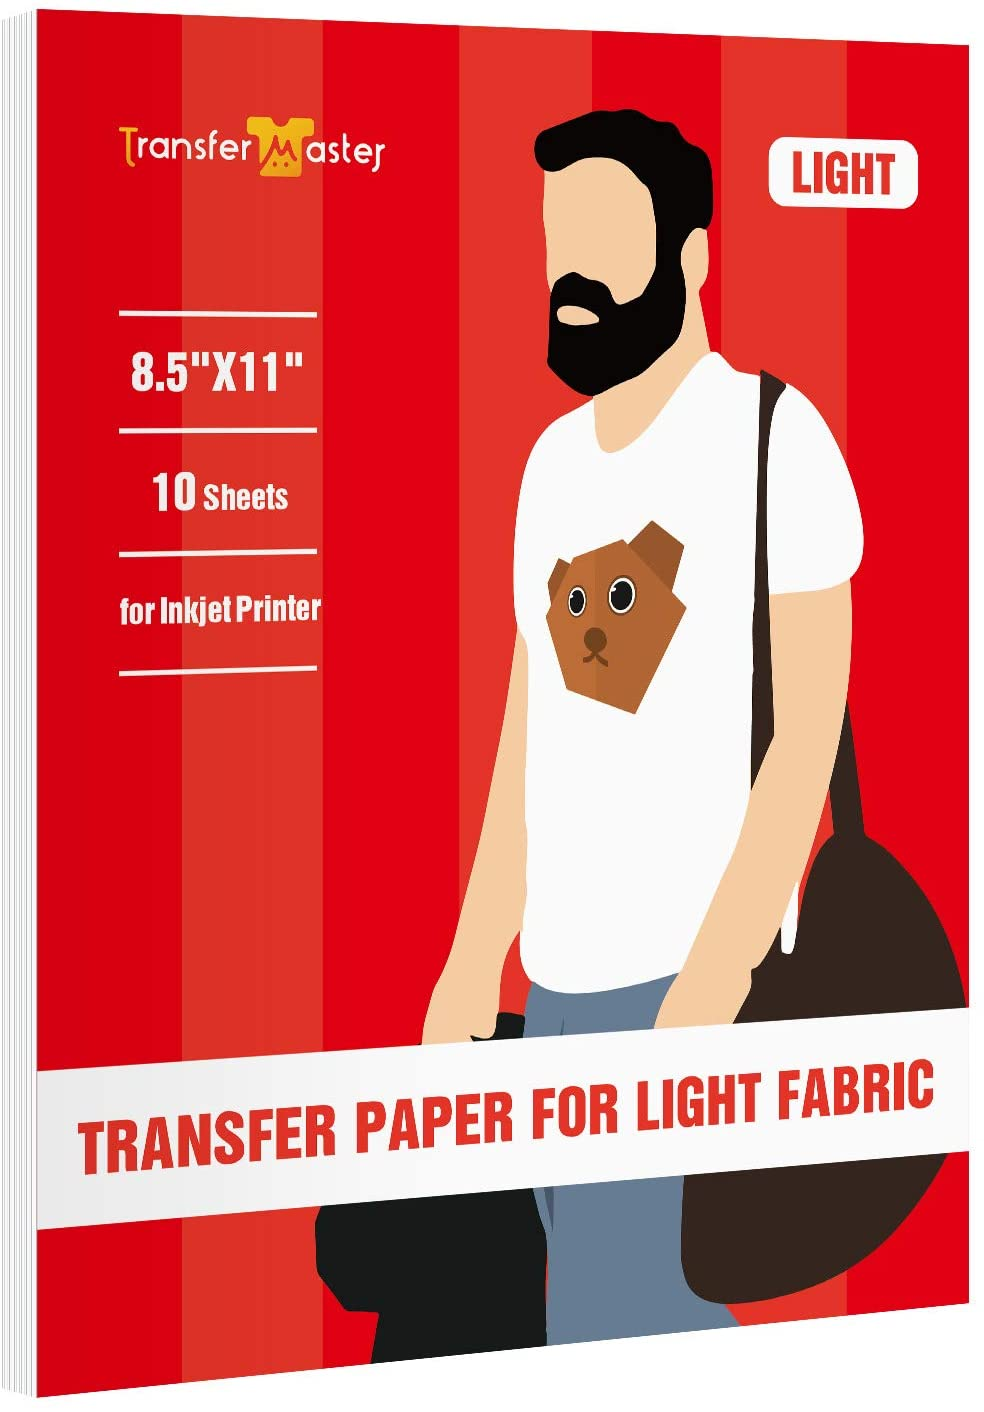 Inkjet Printable Iron-On Heat Transfer Paper for White and Light Fabric T-shirts, Totes, Bags, 8.5x11 Inch 10 Sheets by Transfer Master